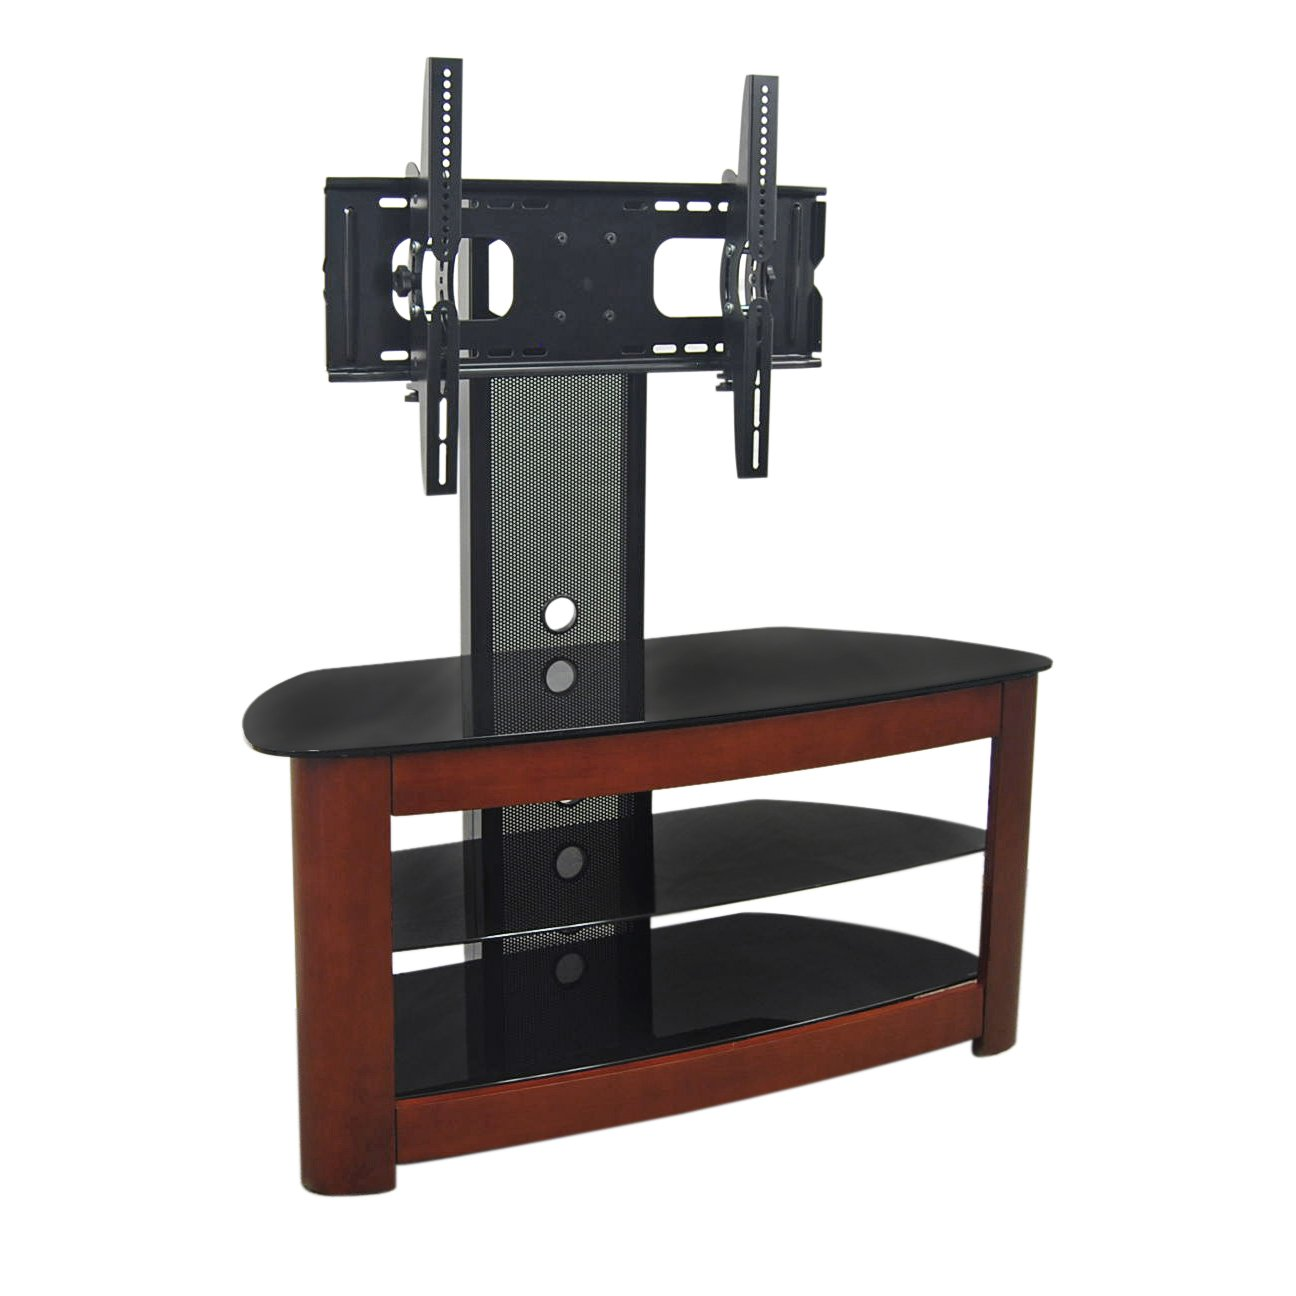 Wanting To Get A New TV Stand